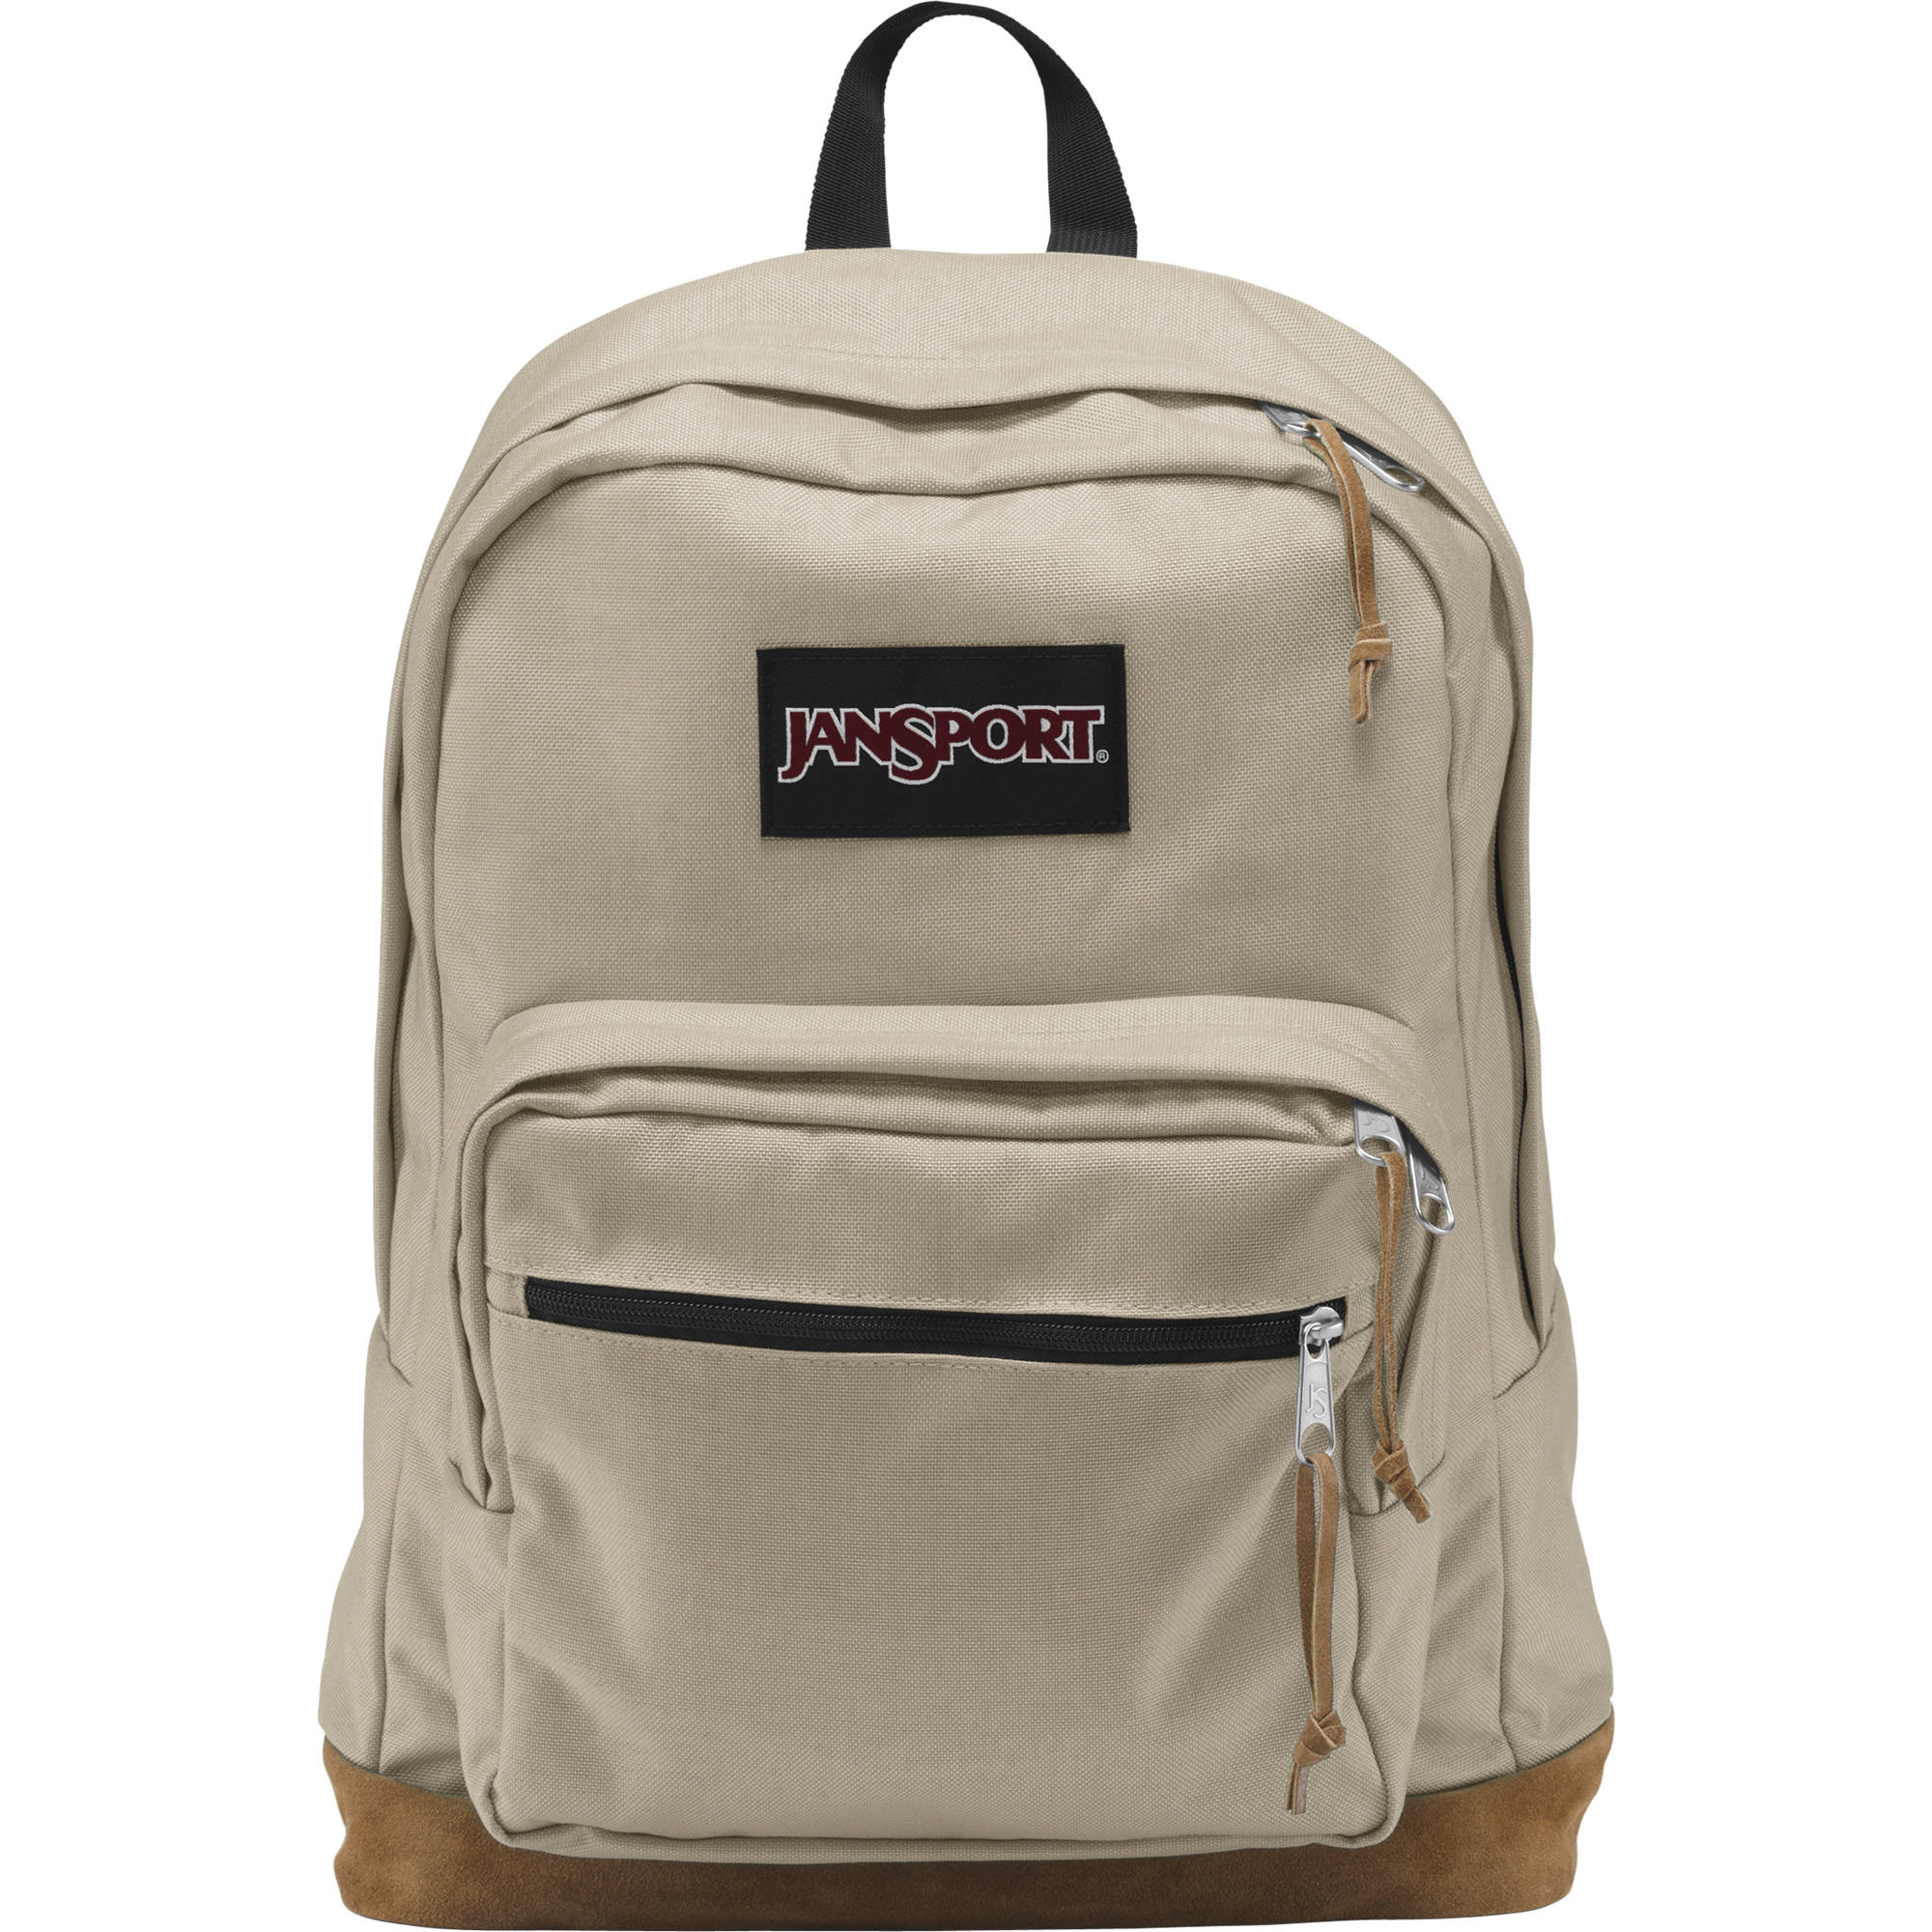 JanSport Right Pack Backpack (Desert Beige) JS00TYP79RU B&H